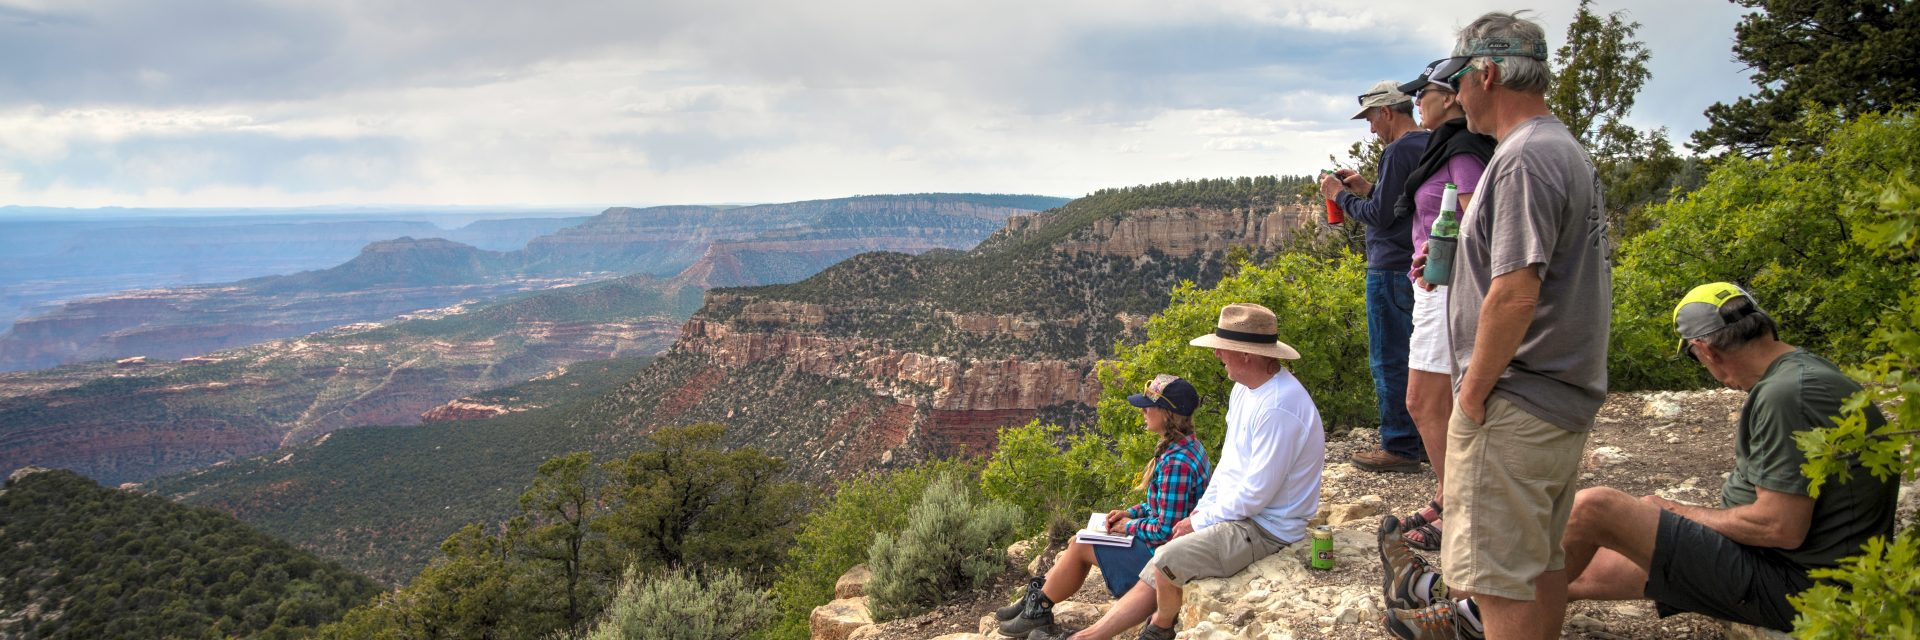 North Timp Point Overlook, North Rim of the Grand Canyon, guided tour